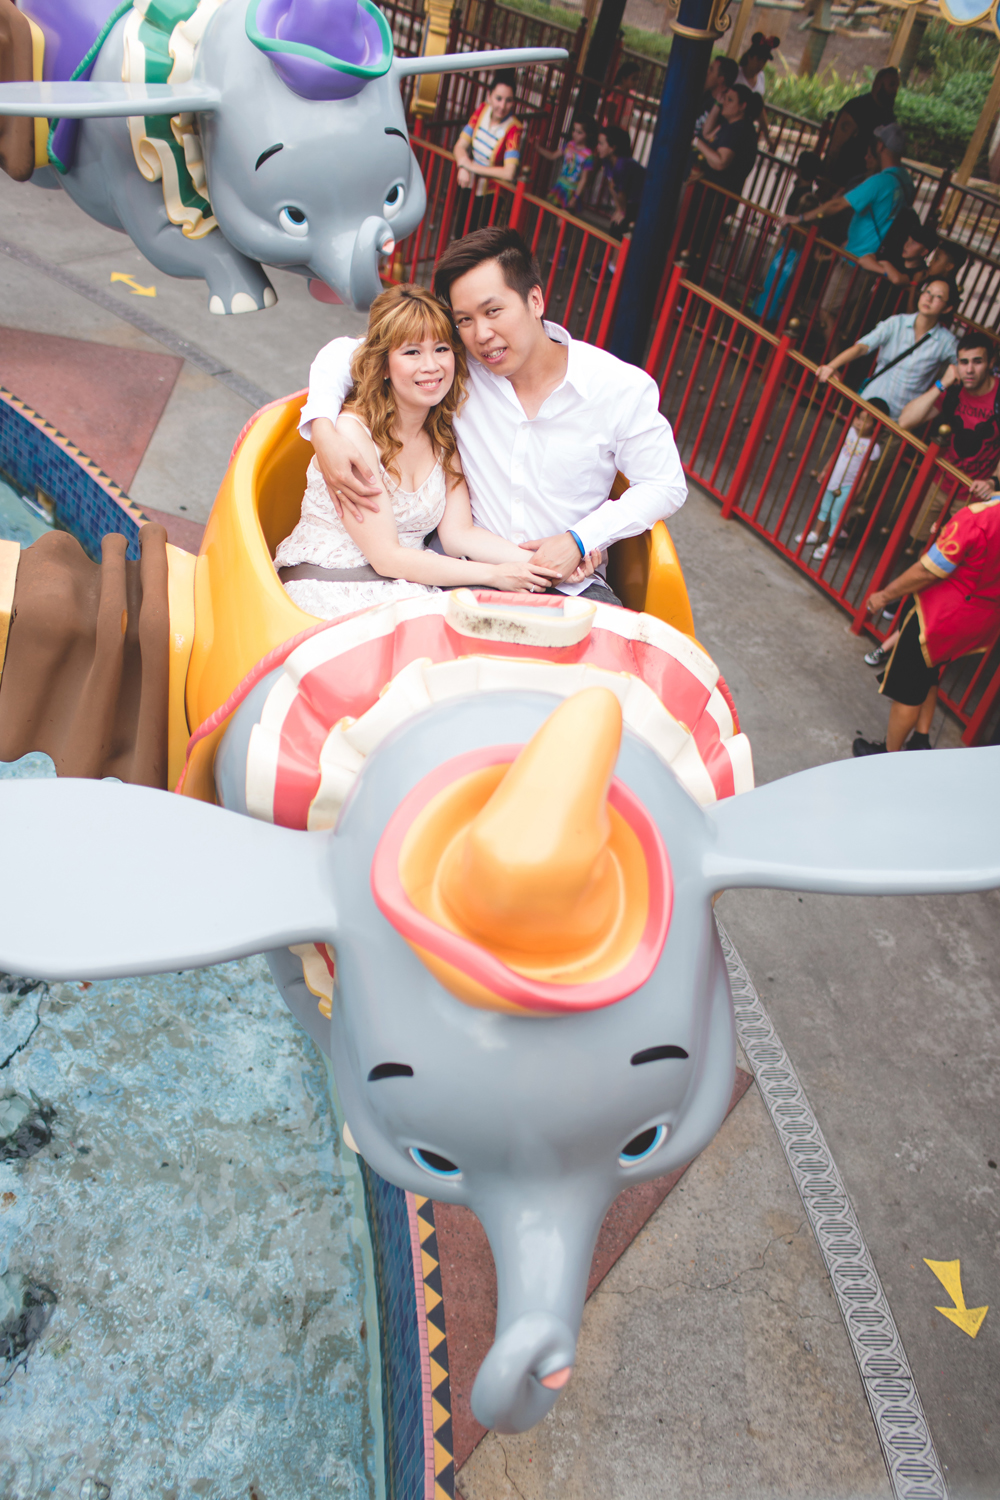 Disney Honeymoon session - Disney Engagement Photos - Disney Wedding Photographer - Destination Orlando Wedding Photographer - Jaime DiOrio (35).jpg